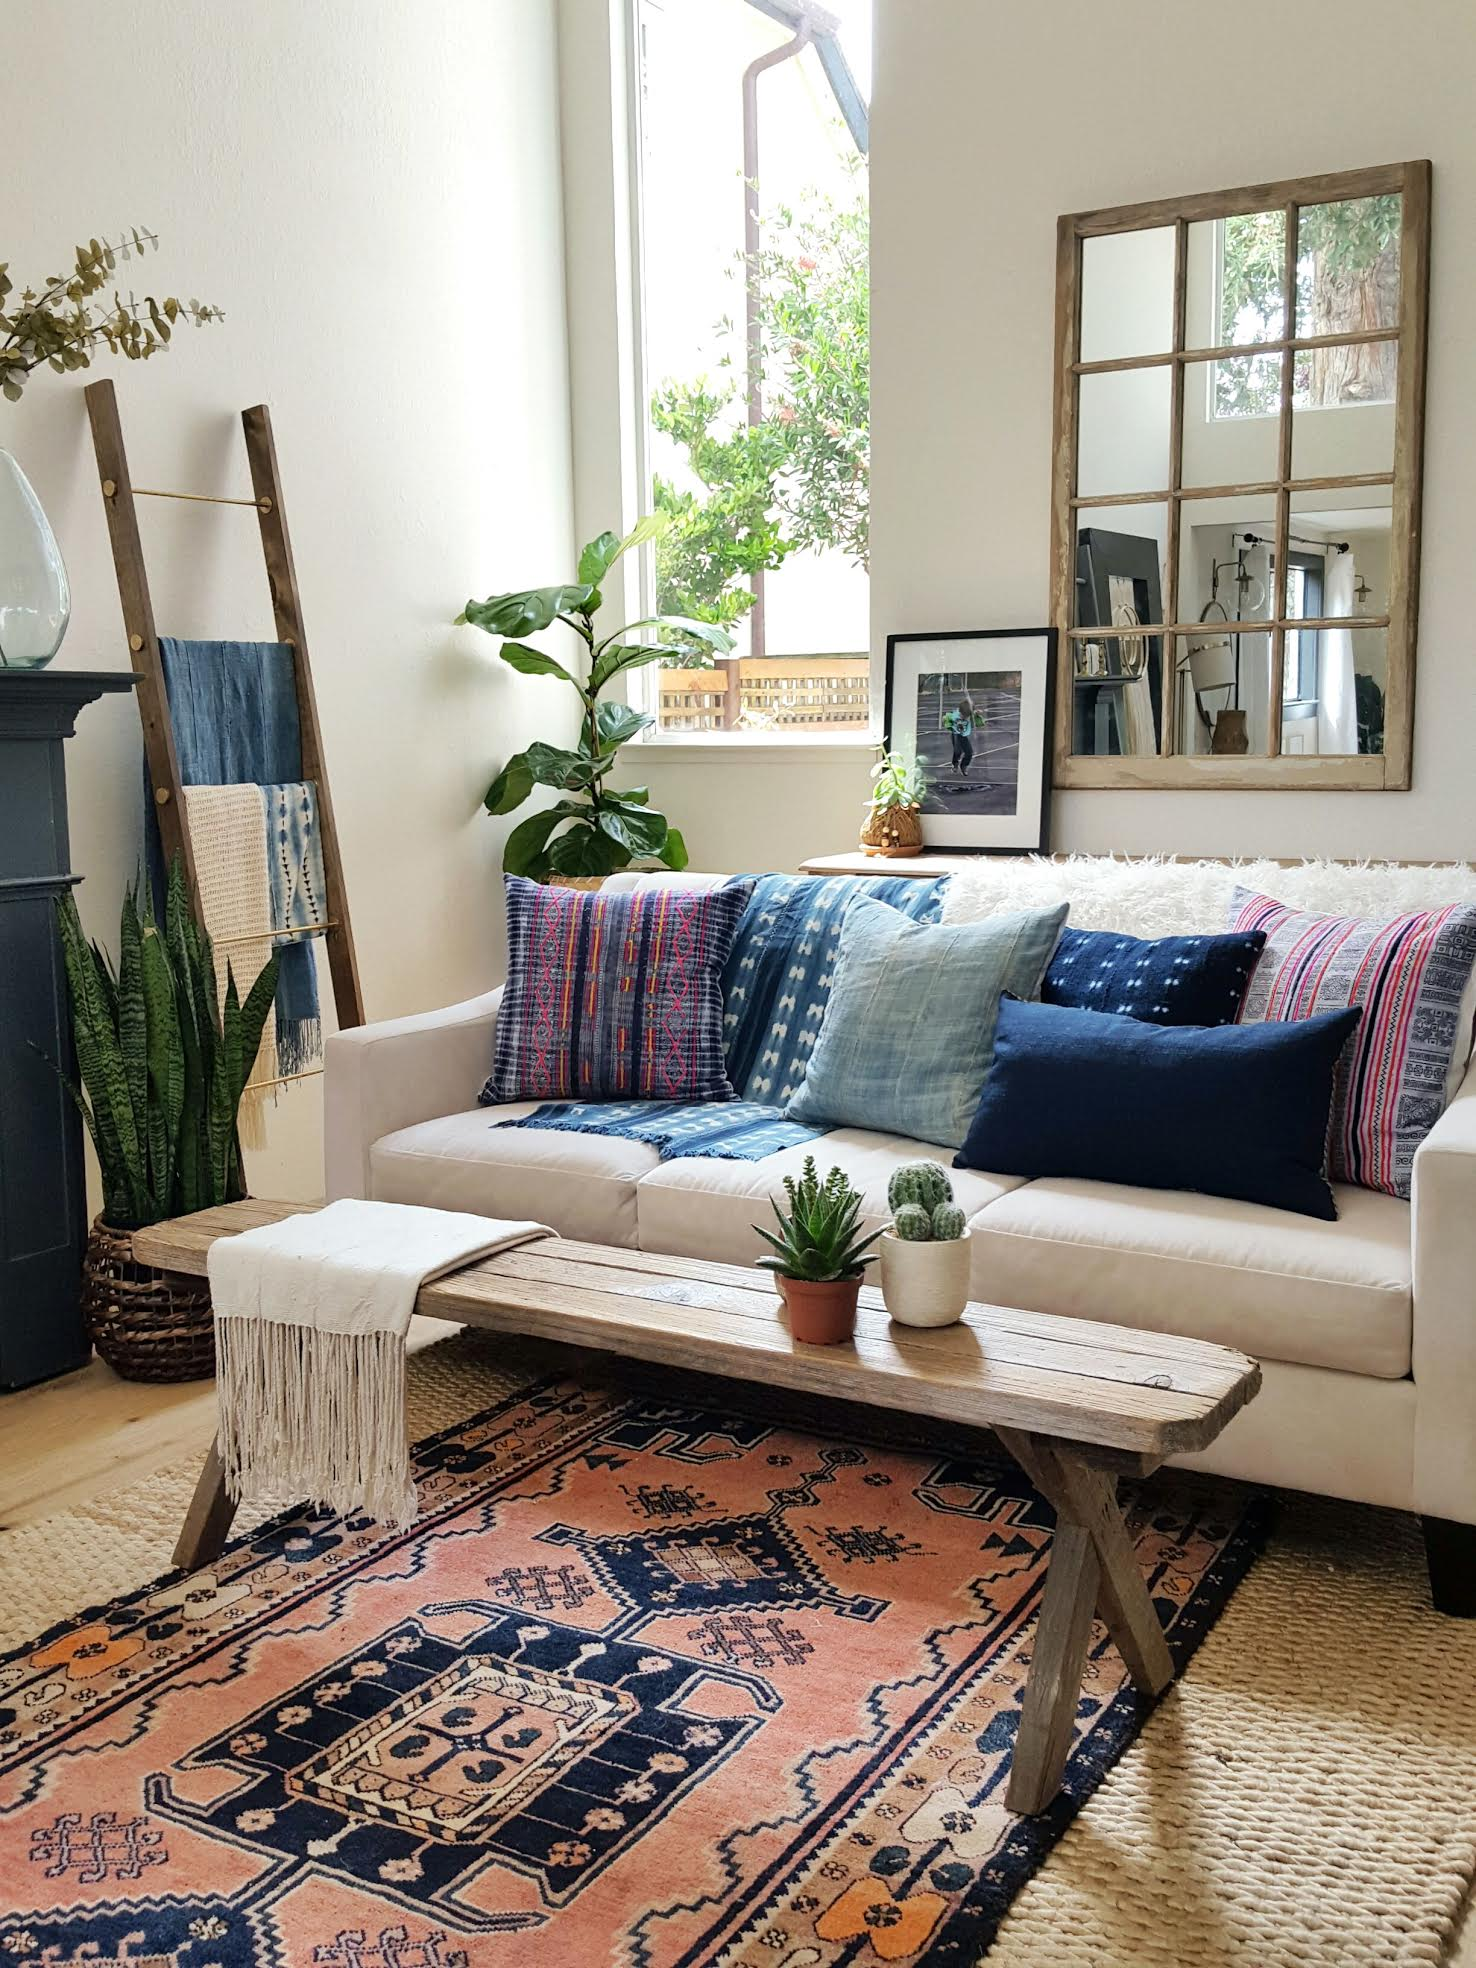 ORC Week 3: 5 Tips to Achieve a Bohemian Eclectic Vibe